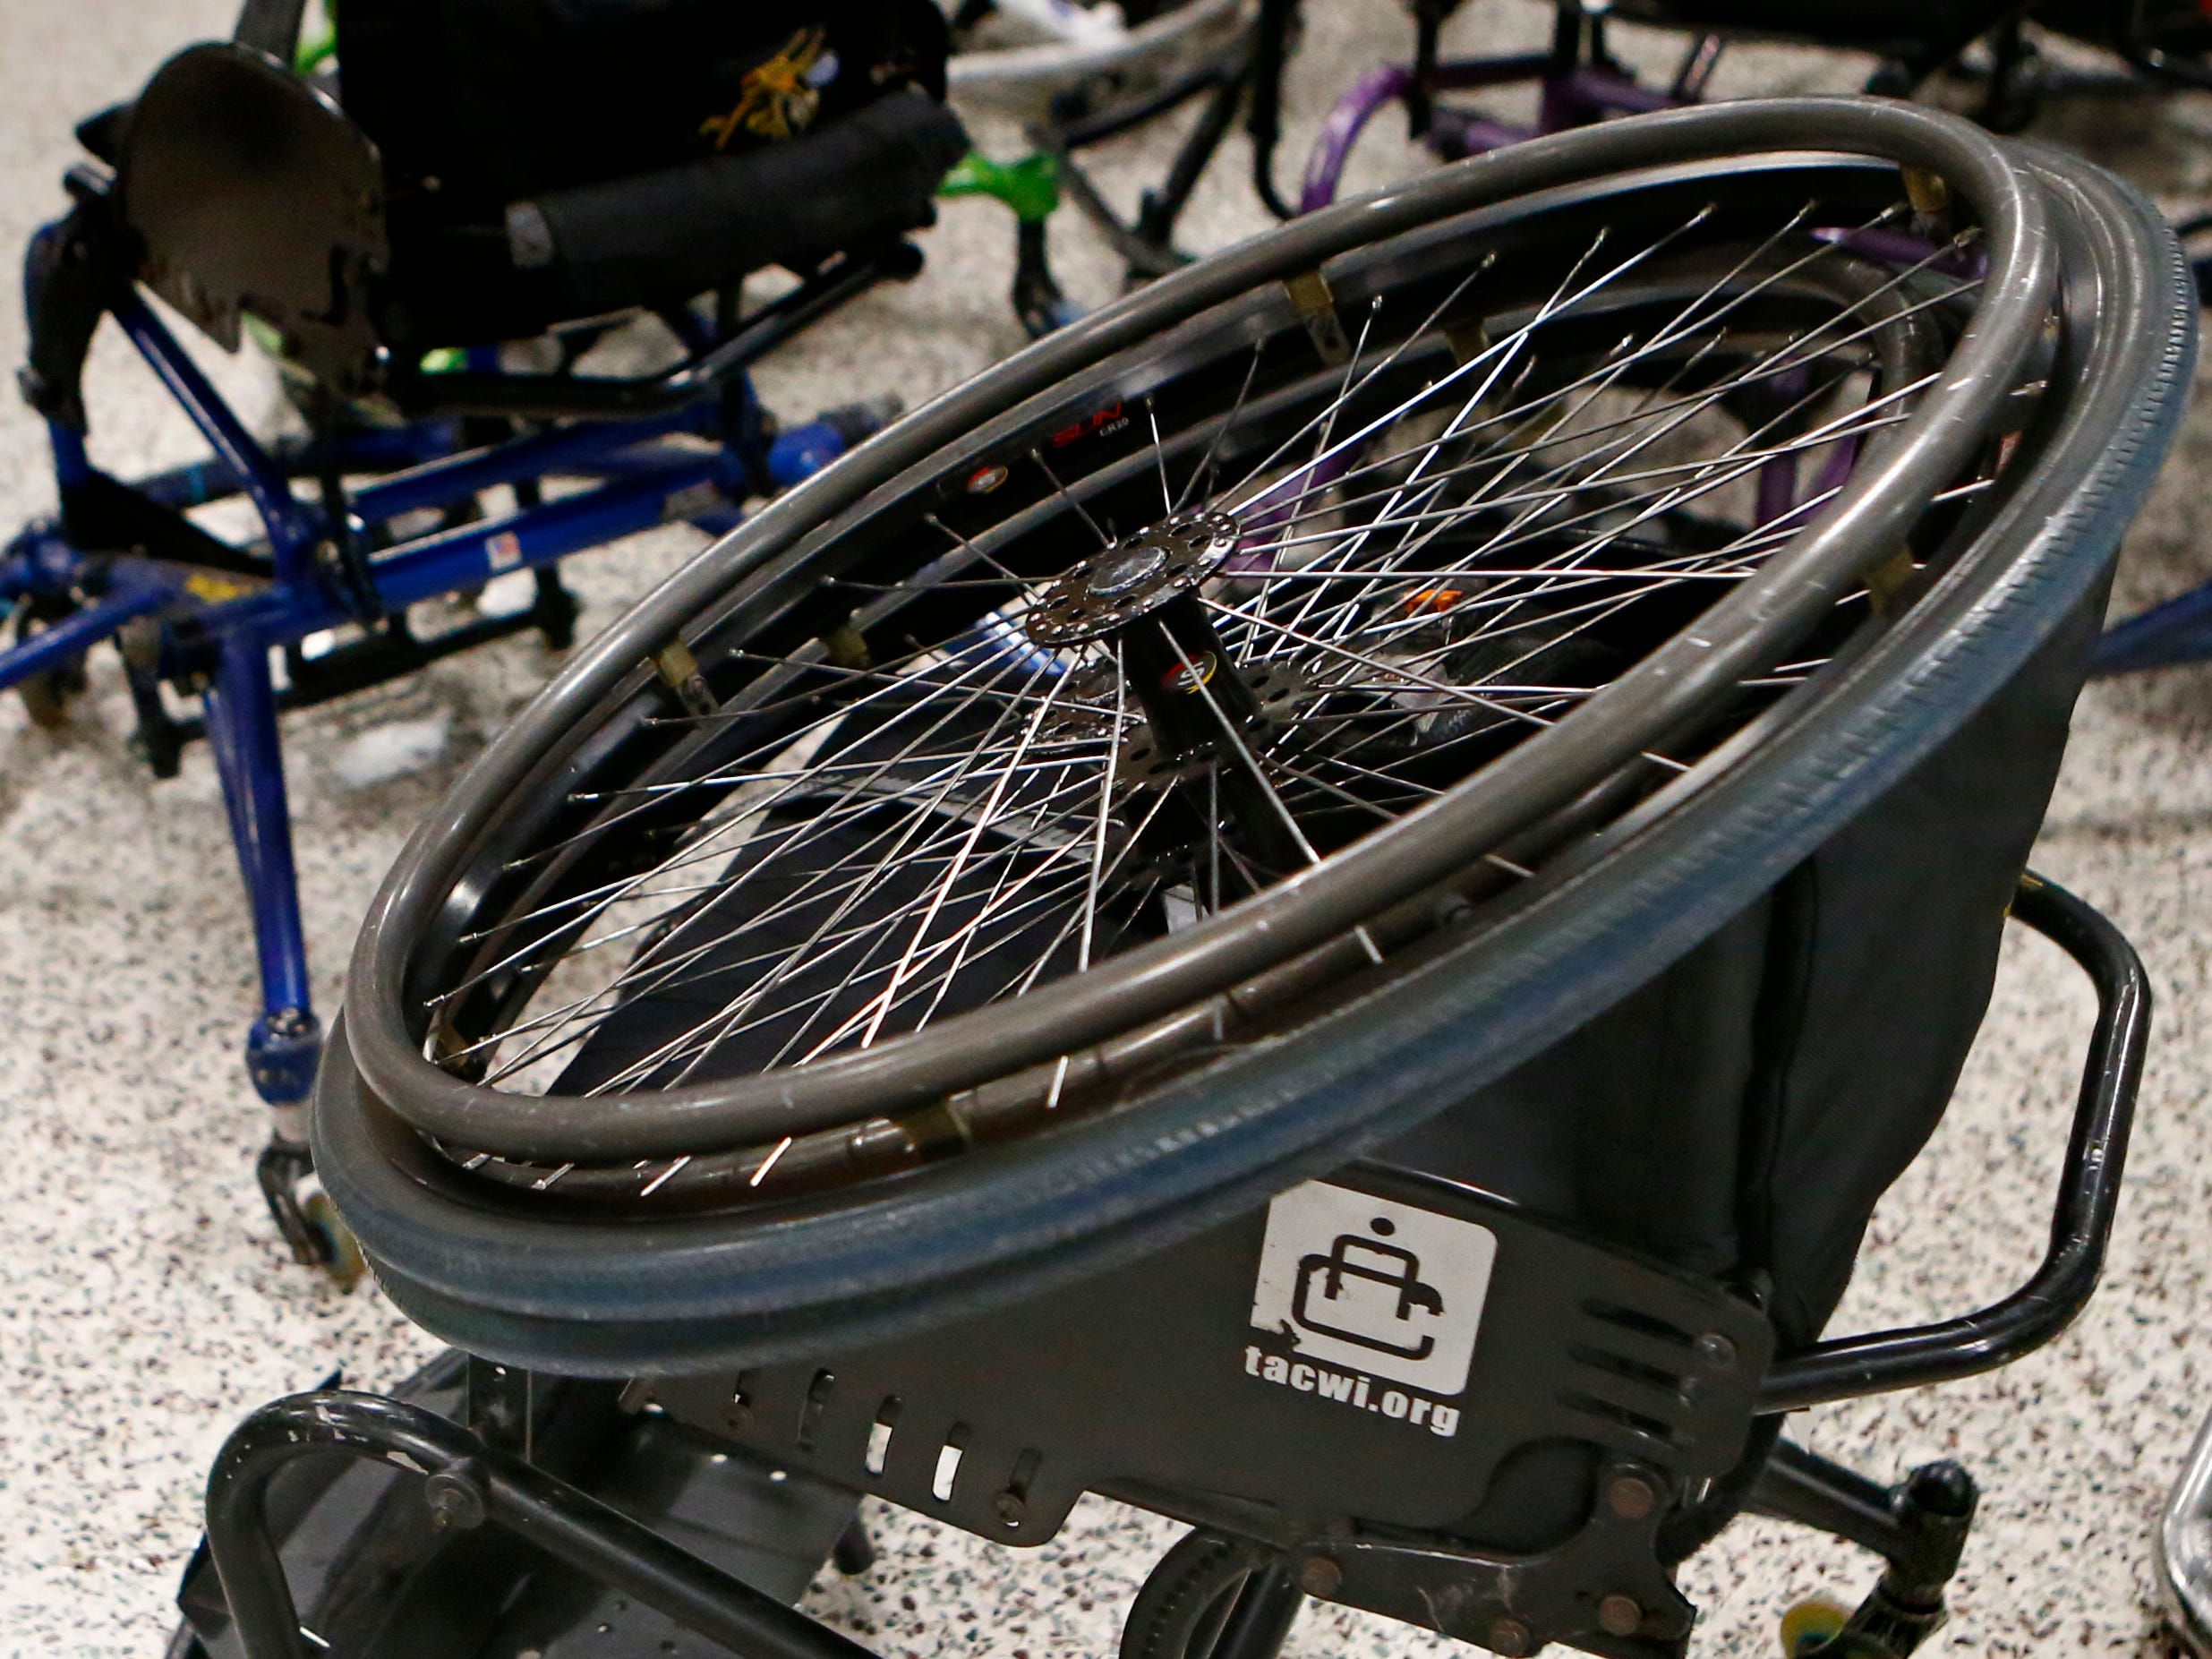 Sports wheelchairs await transport at the end of an eve of 3 vs. 3: Adult Wheelchair Basketball League with able bodied and mobility limited players at Jefferson Elementary School in Wauwatosa on Jan. 24.